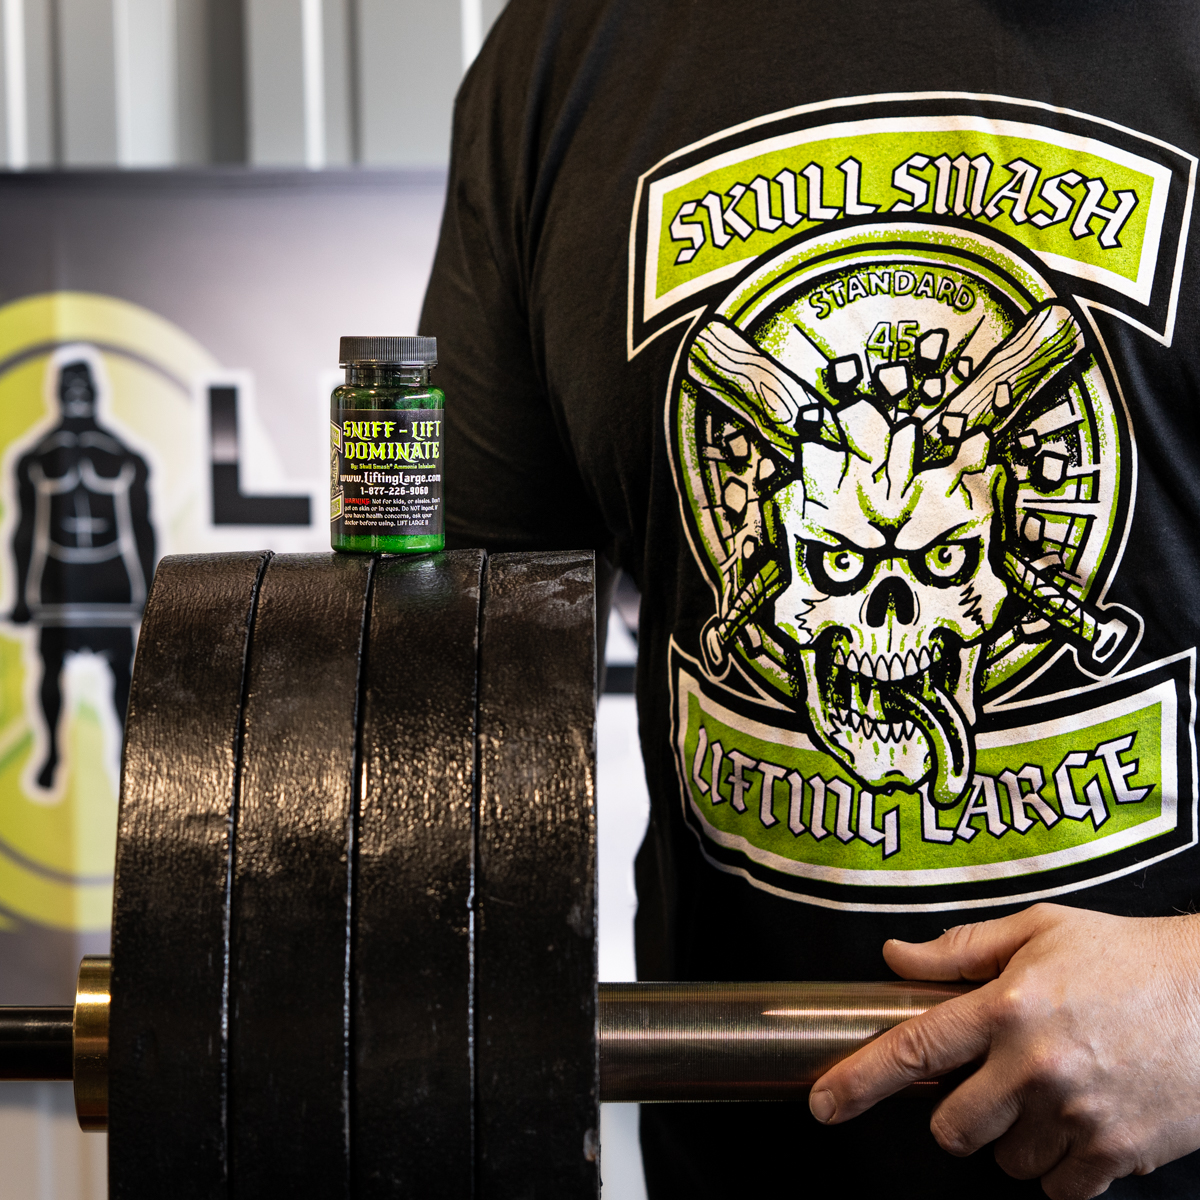 Skull Smash T-shirt and Inhalant Combo Pack